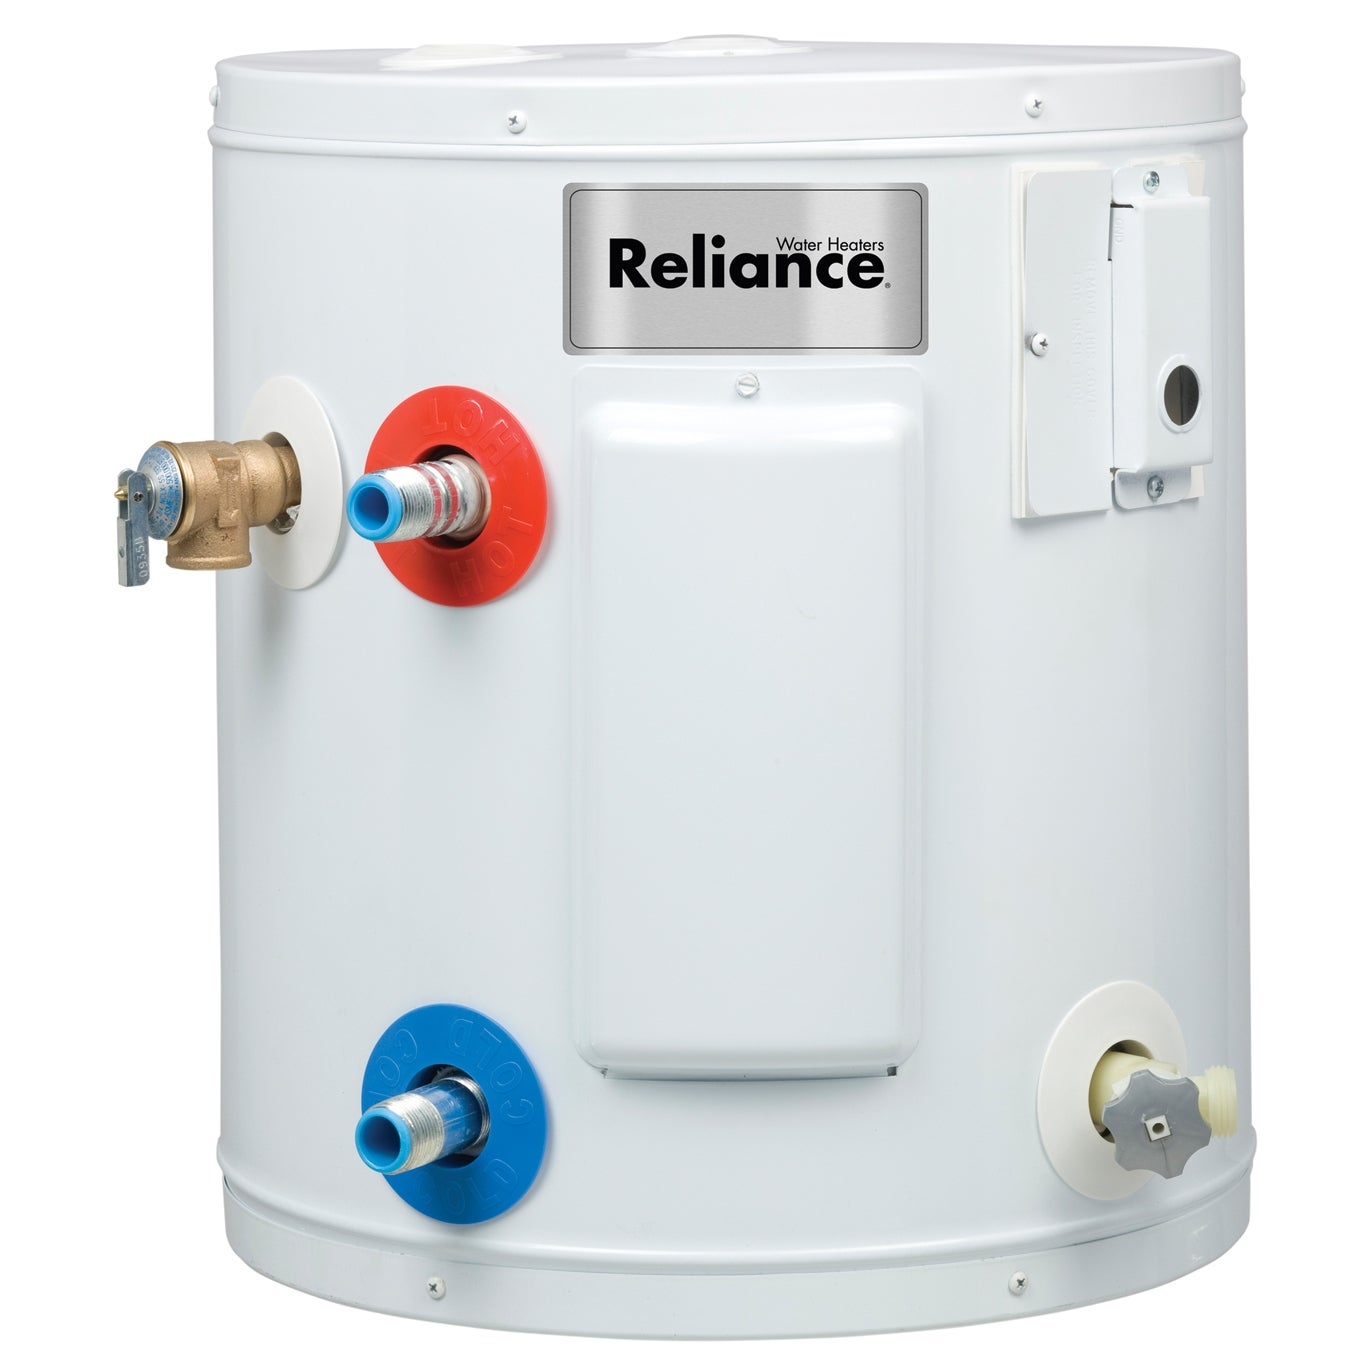 Jensen Reliance 6 10 Somsk 10 Gallon Electric Water Heate...